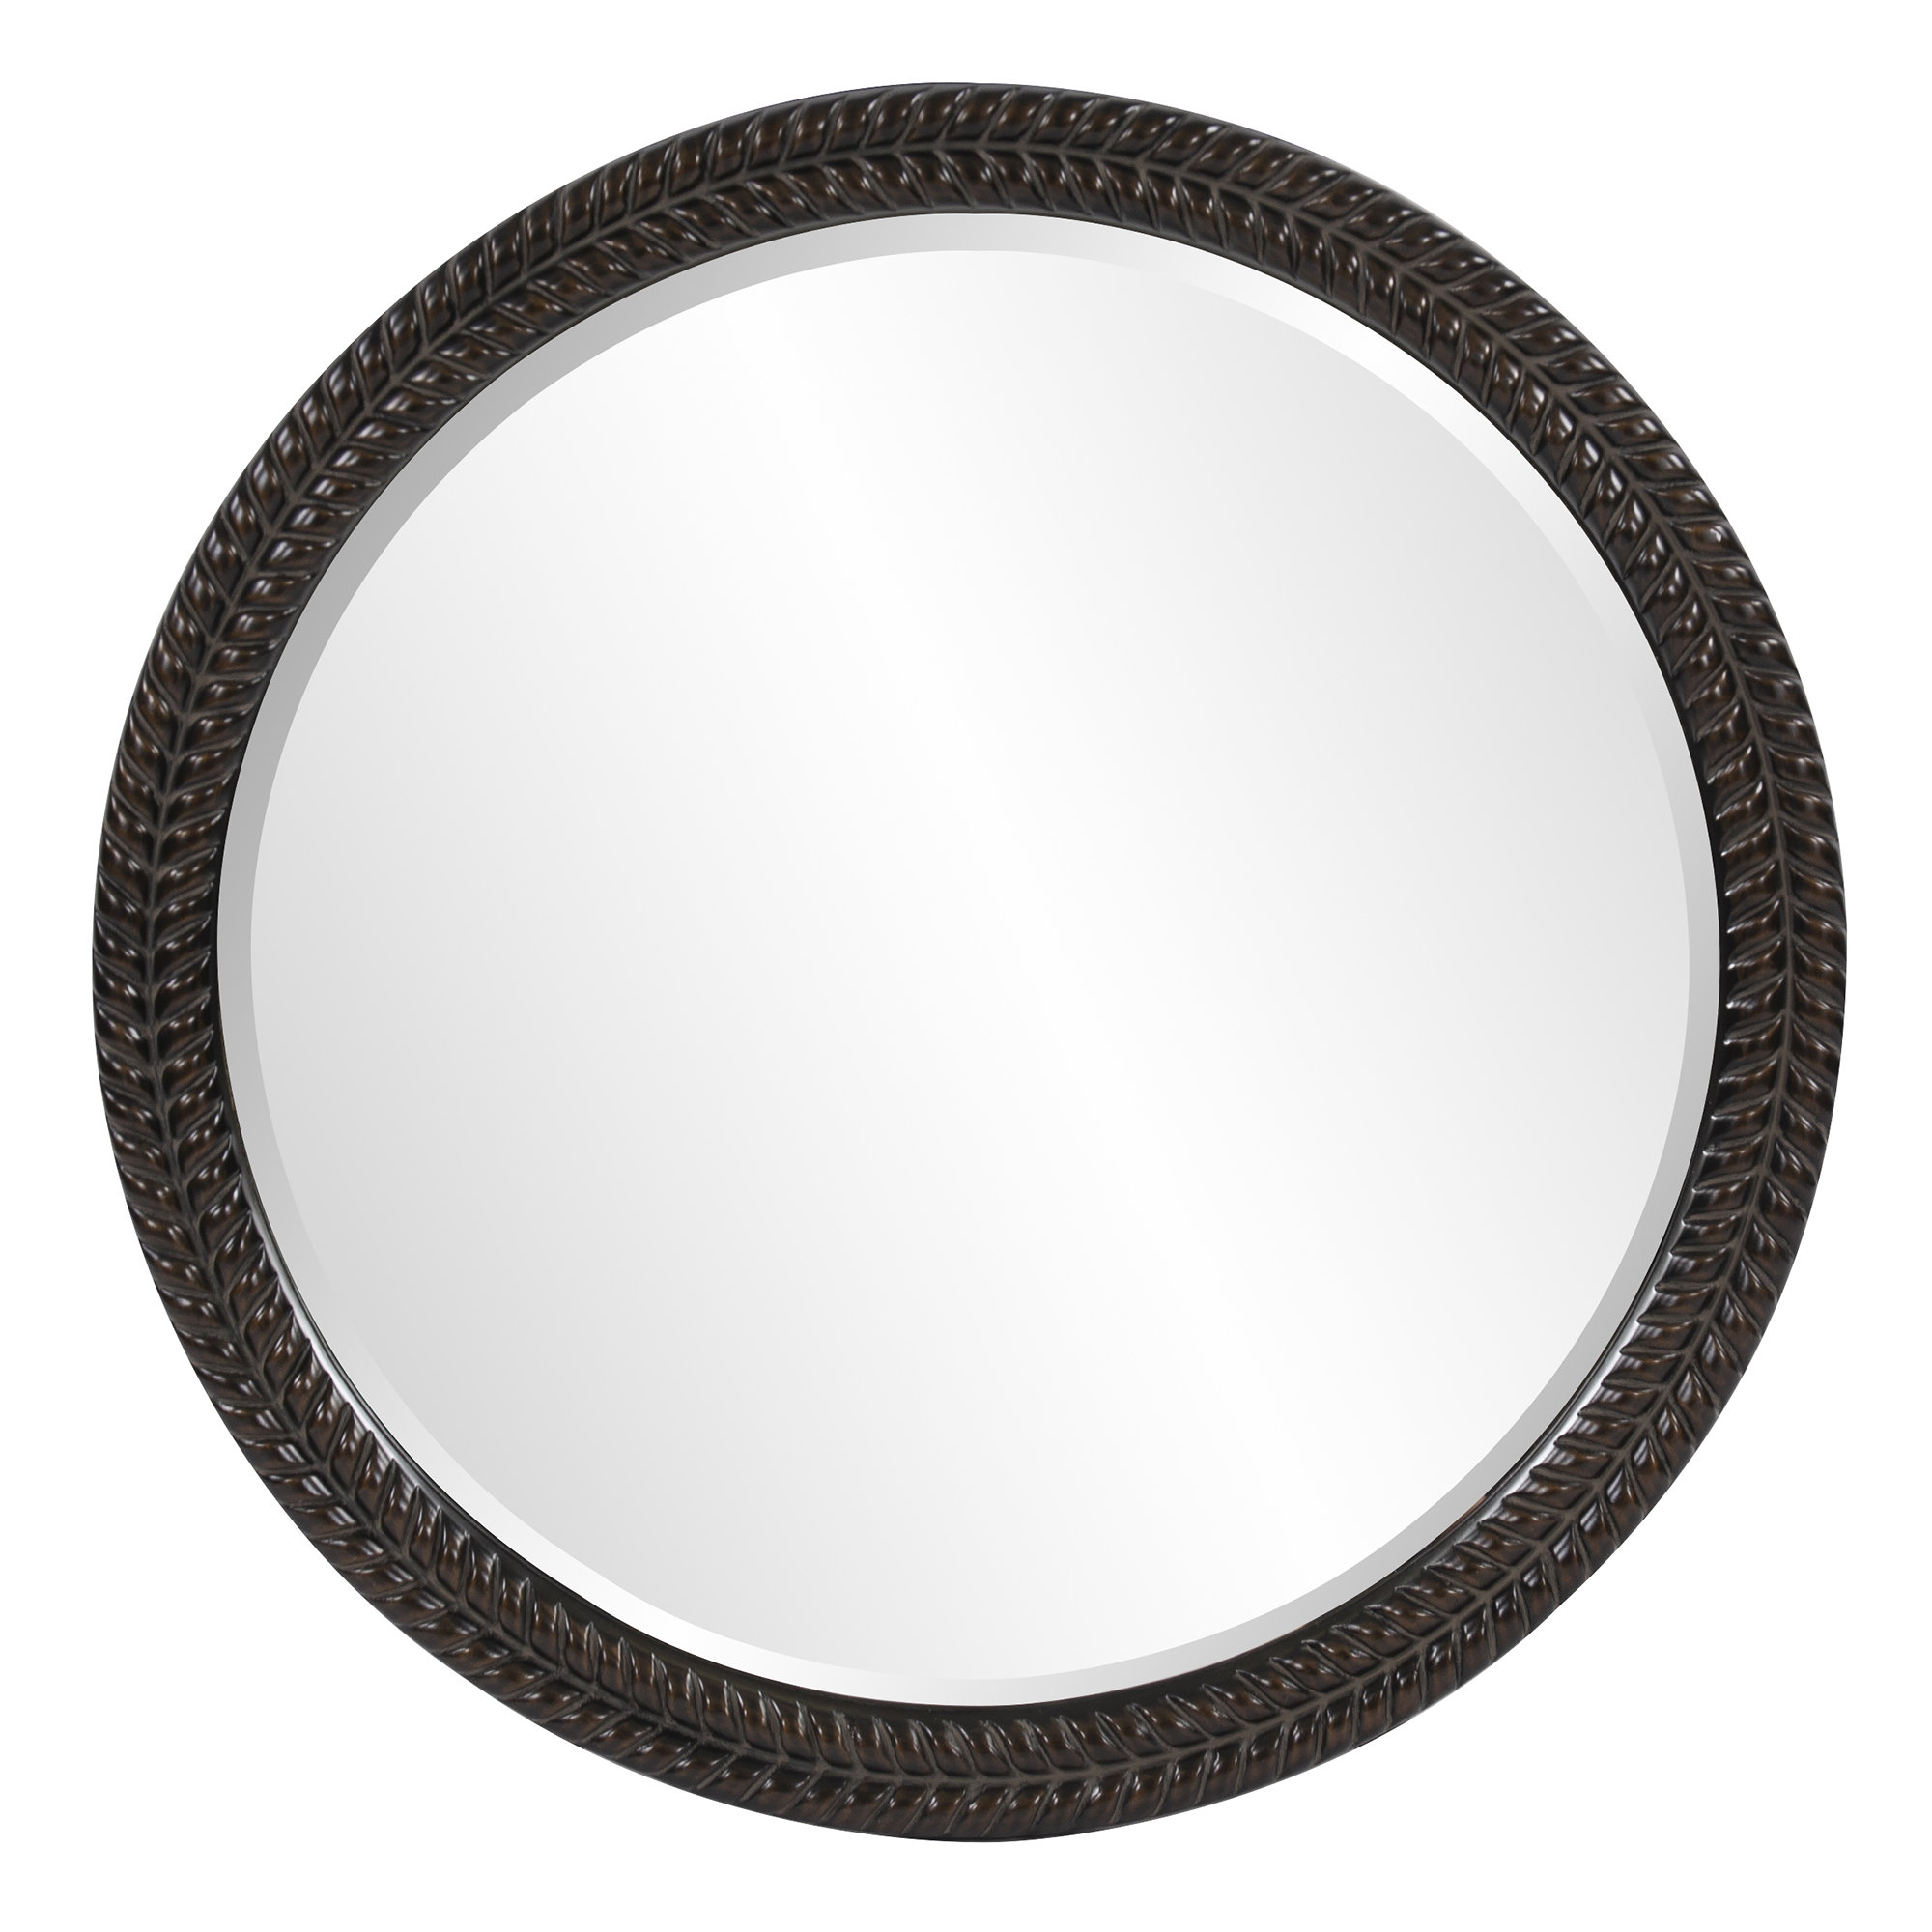 Garrison Accent Mirror & Reviews | Joss & Main Within Glen View Beaded Oval Traditional Accent Mirrors (View 14 of 20)